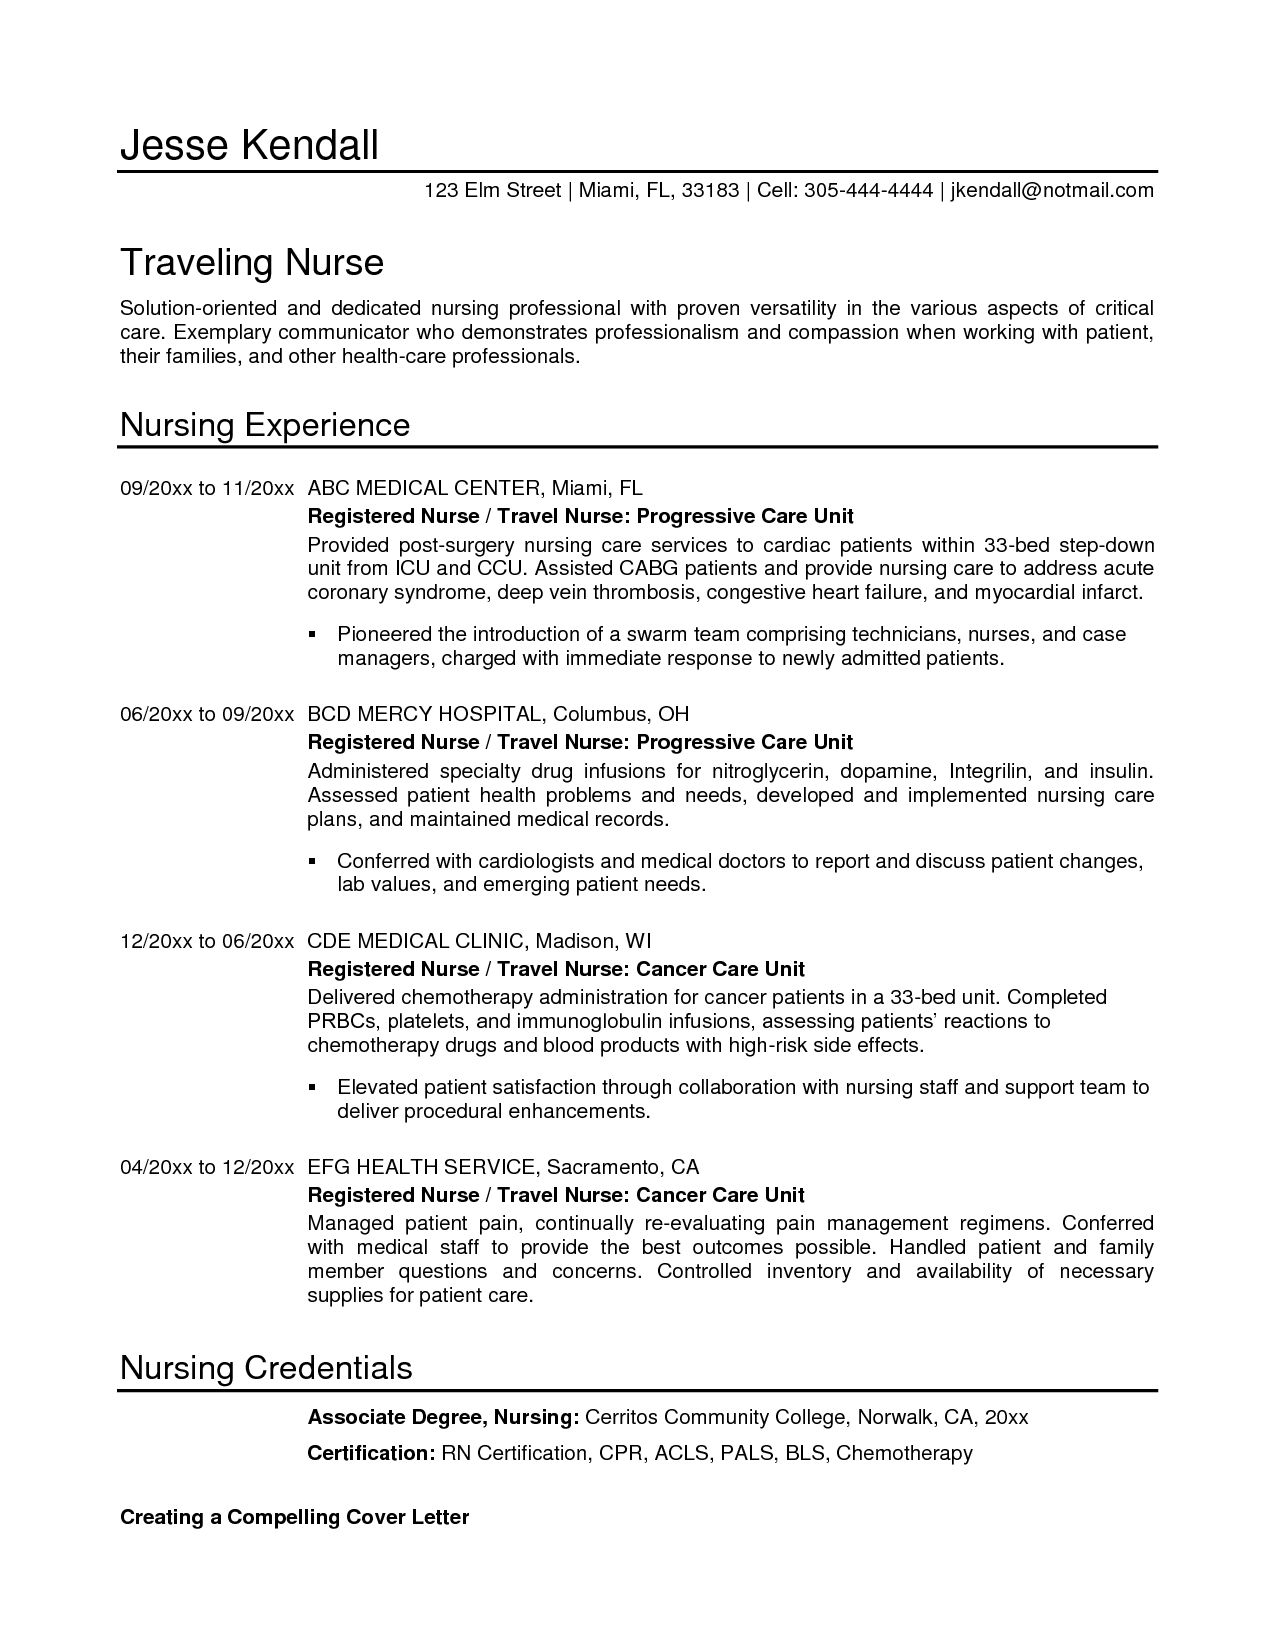 resume New Grad Rn Resume Sample new grad rn resume examples oncology nurse sample httpwww international cover letter lead trainer resume